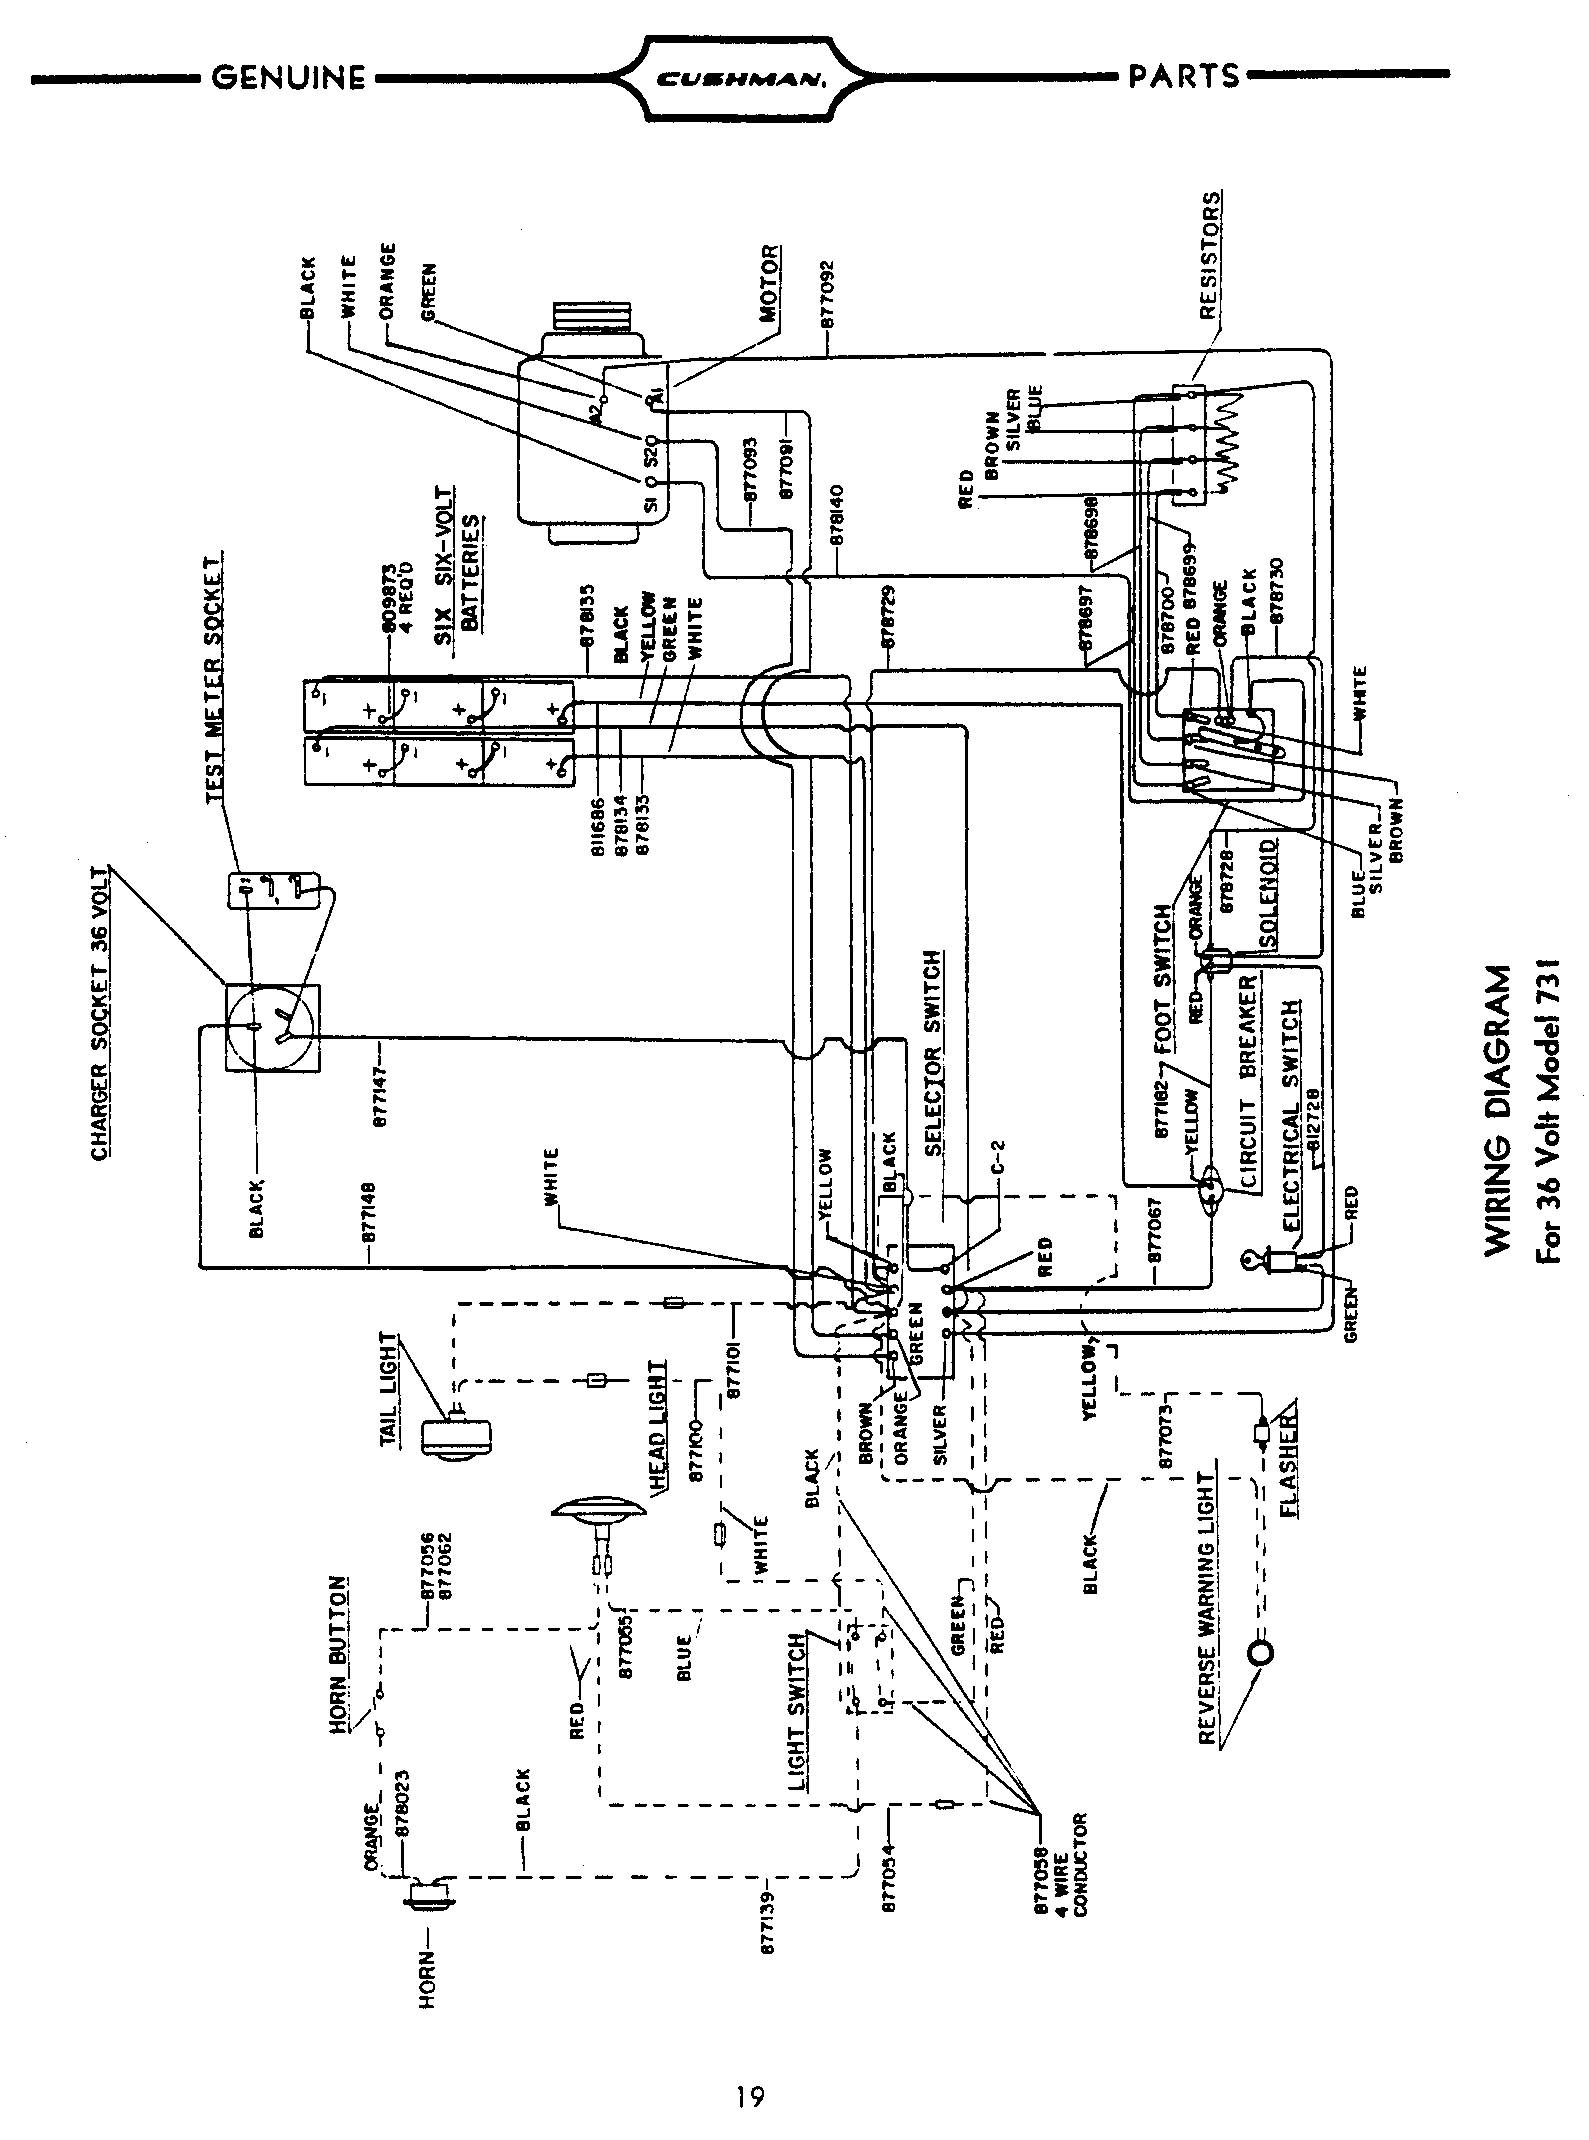 36 Volt Ez Go St Golf Cart Wiring Diagram